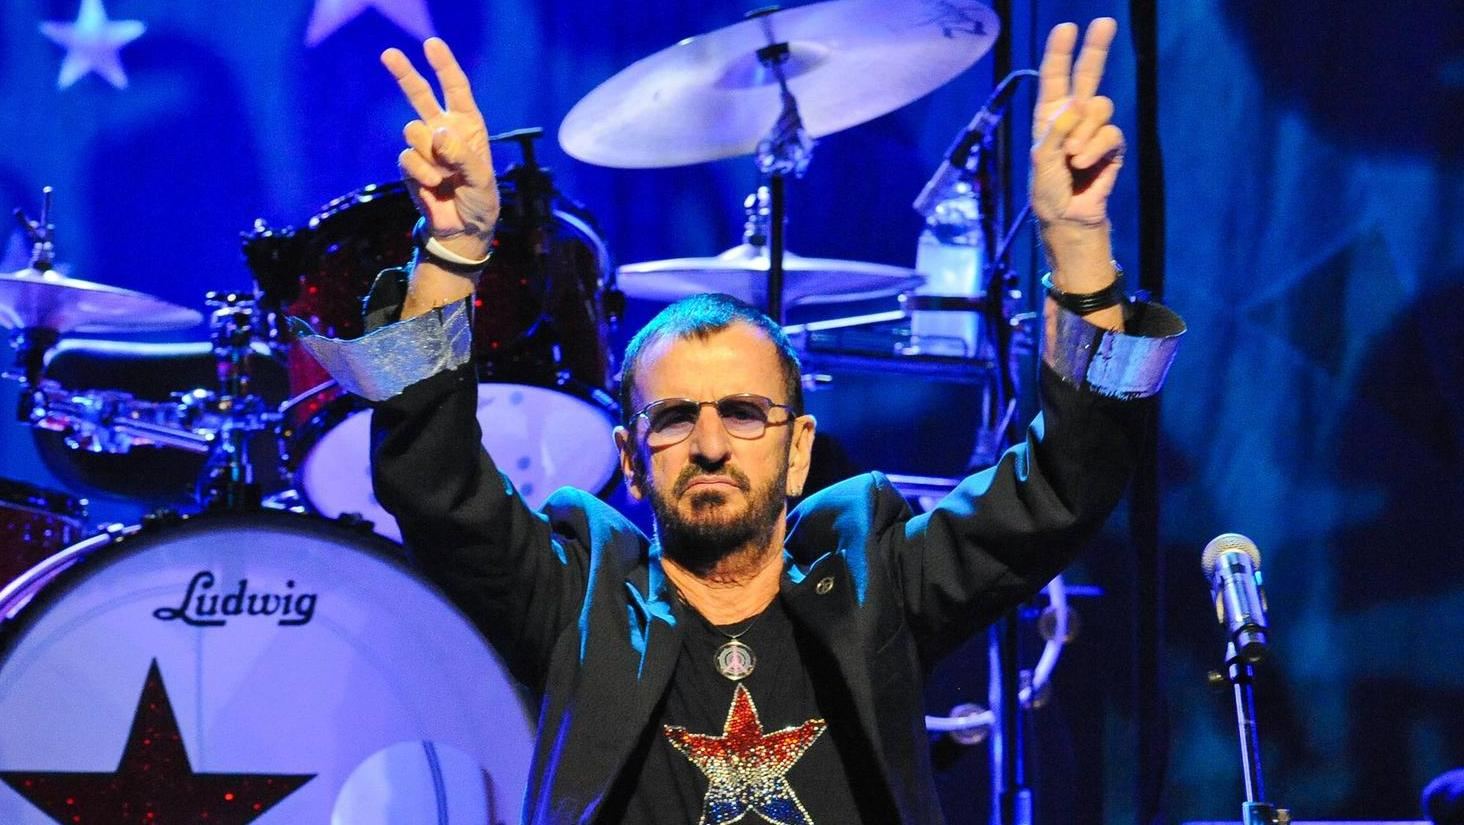 ringo starr sagt konzert in north carolina ab. Black Bedroom Furniture Sets. Home Design Ideas